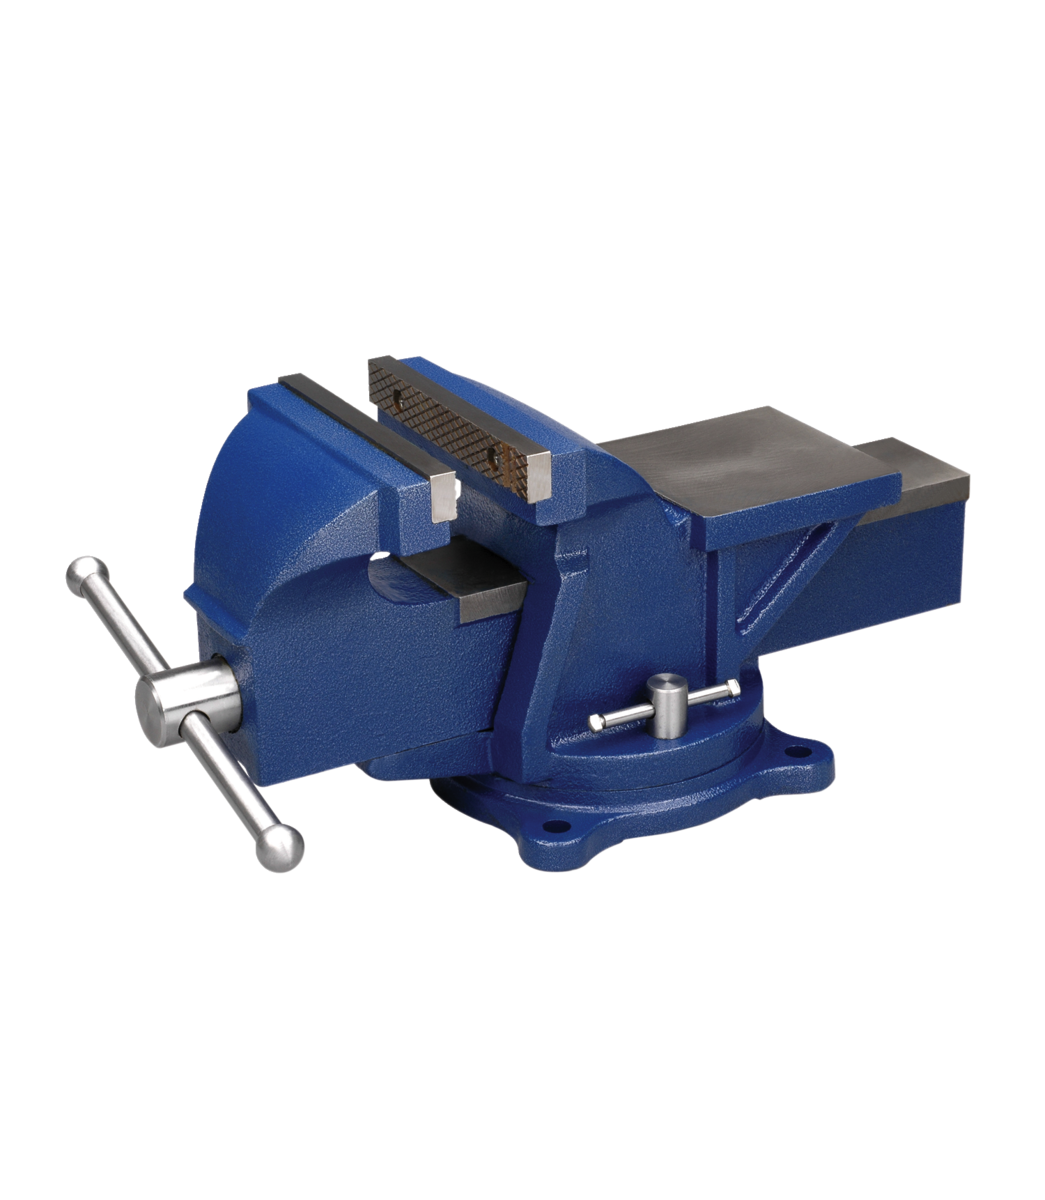 "General Purpose 6"" Jaw Bench Vise with Swivel Base"